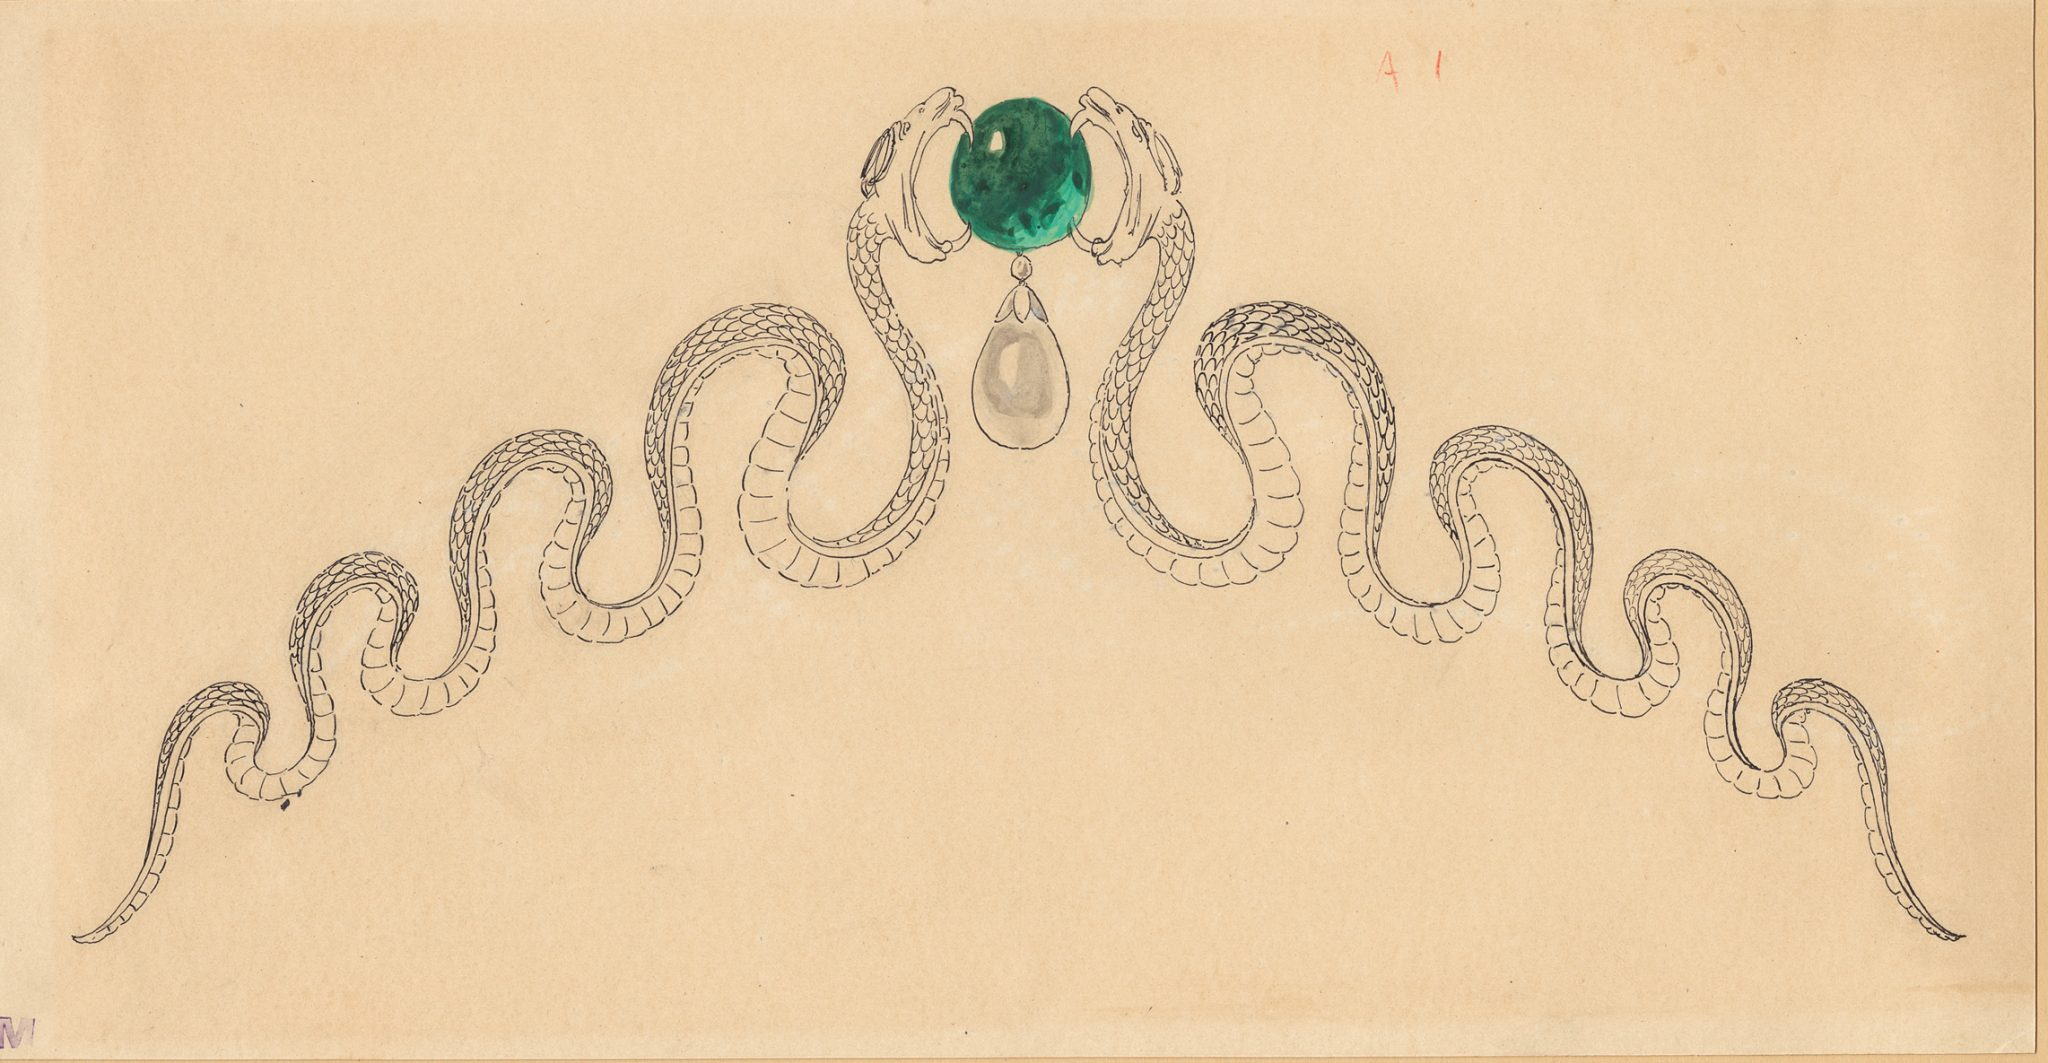 Joseph Chaumet (1852-1926), drawing workshop Preparatory drawing for a tiara with facing snakes surrounding an emerald, Ca. 1890-1900 15.5 x 29 cm Pen and black ink, traces of graphite pencil, gouache wash on cream tinted card © Chaumet Collection